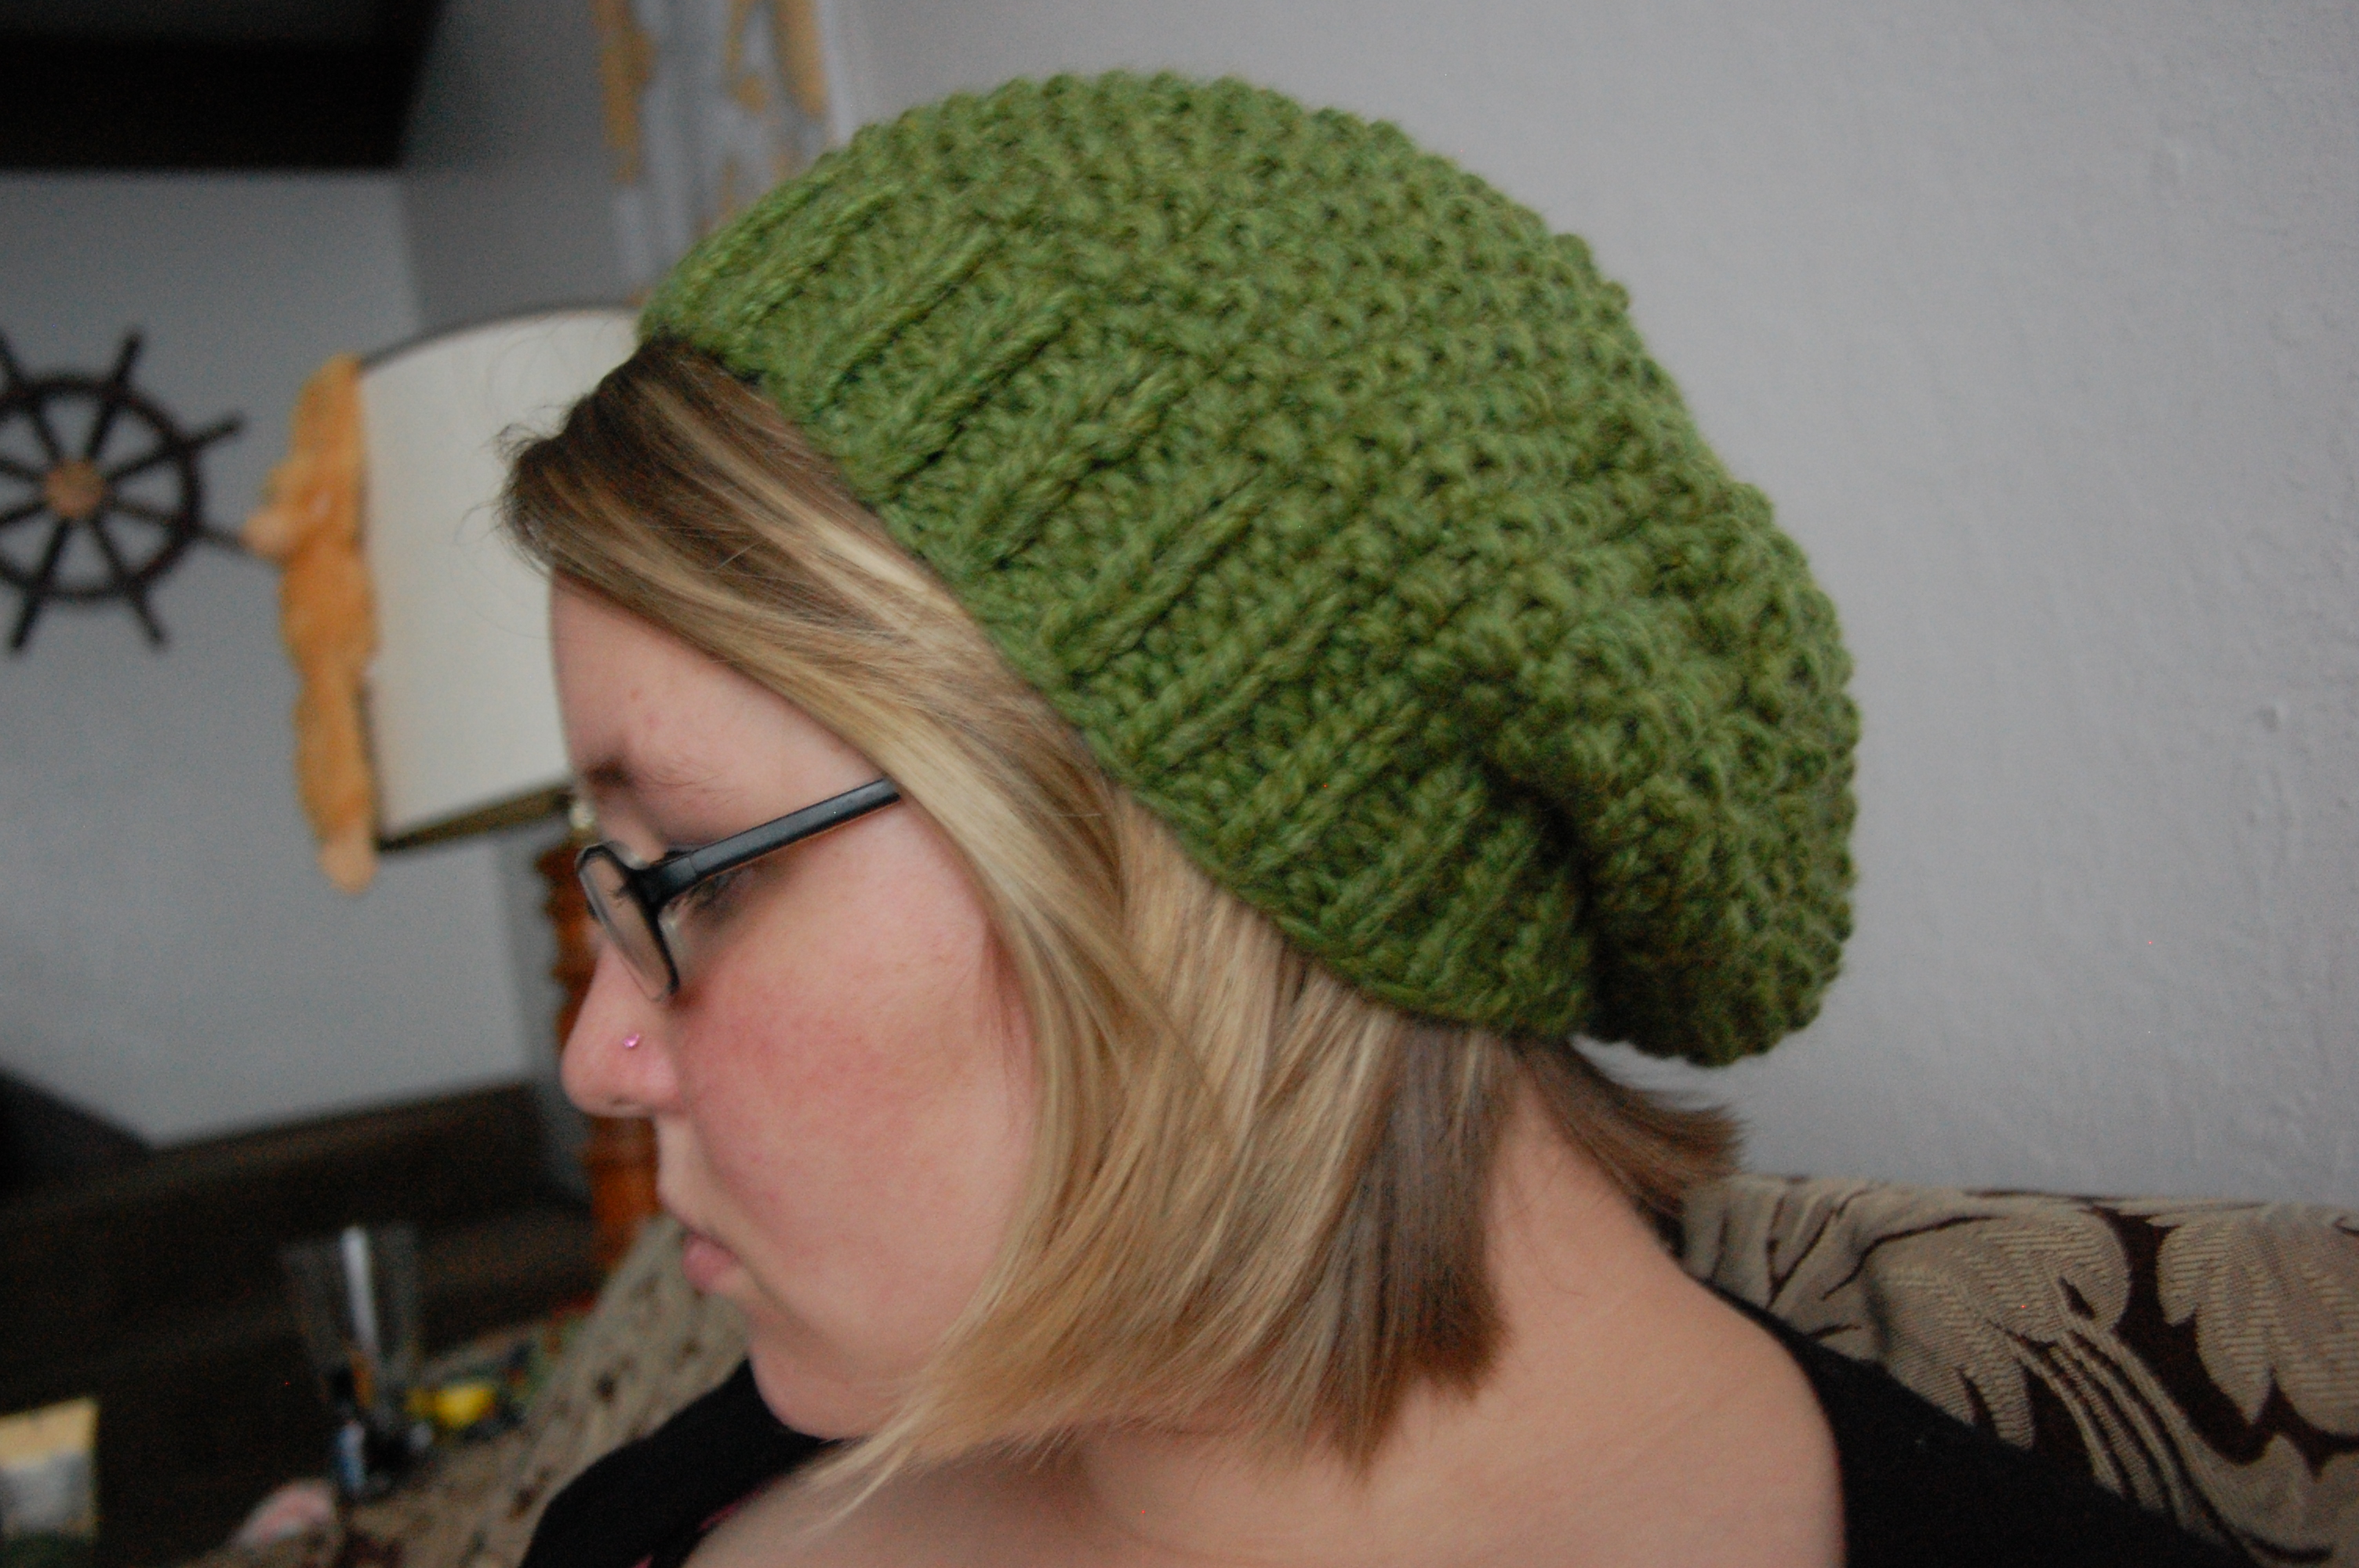 Lemon grass hat knittybutton its a super basic pattern bankloansurffo Choice Image